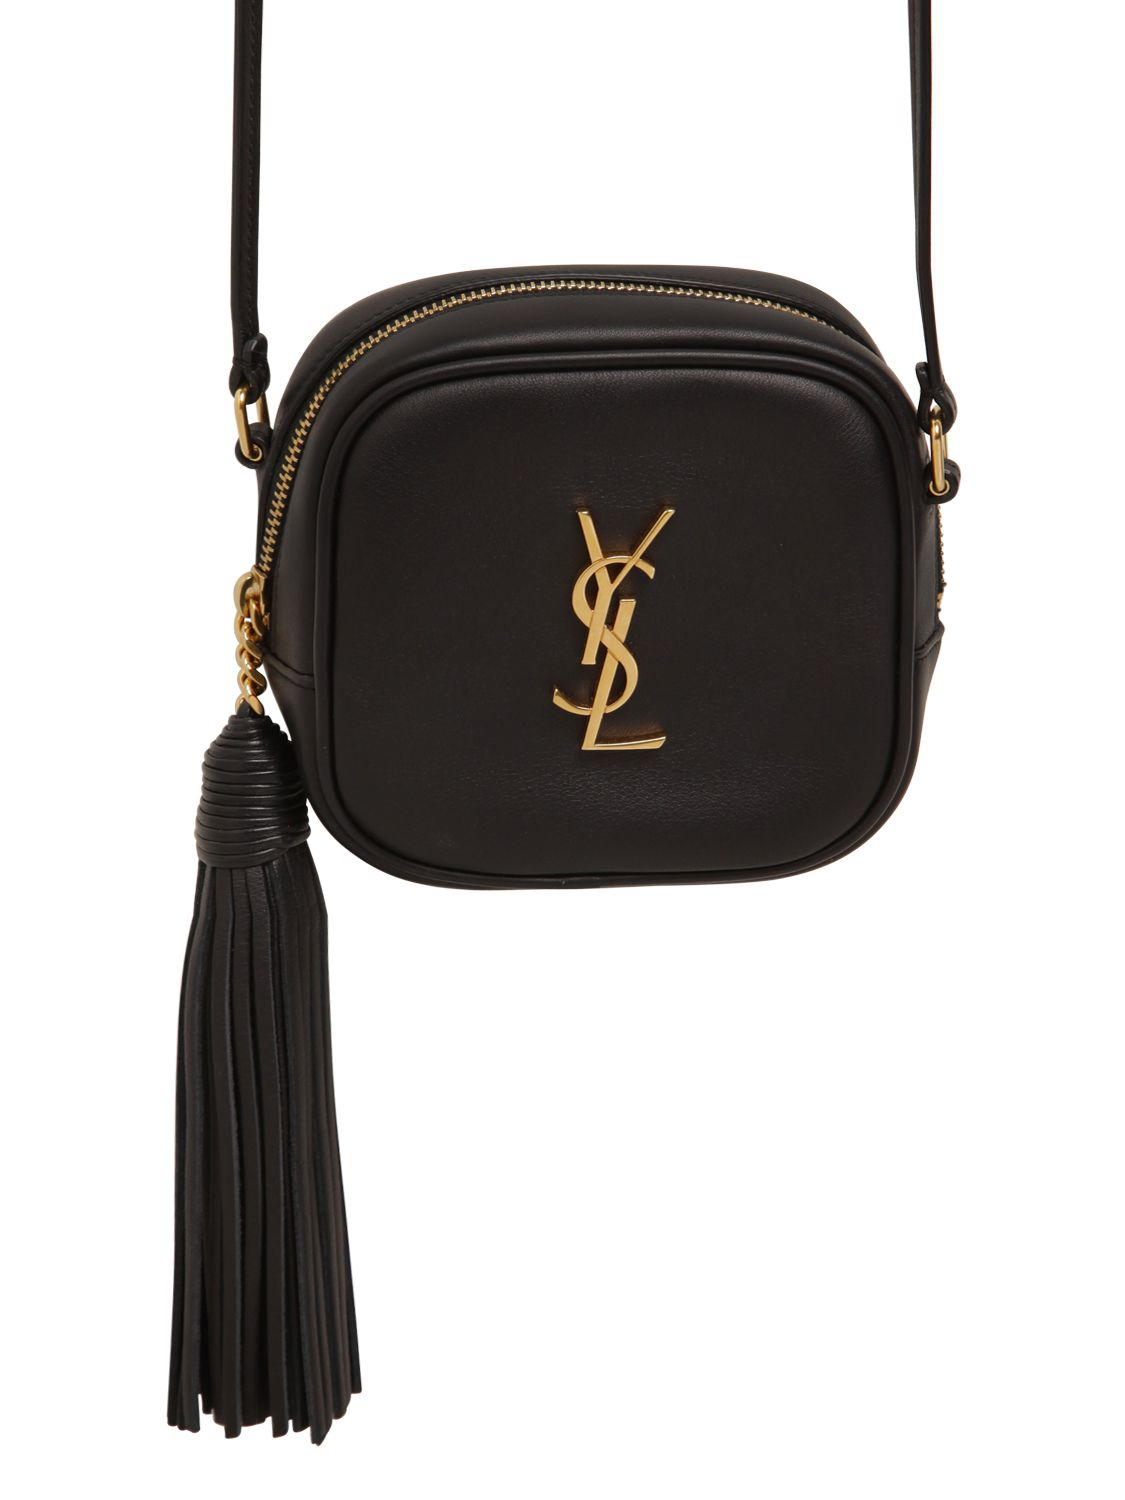 Saint laurent Monogram Leather Shoulder Bag W/ Tassel in Black | Lyst